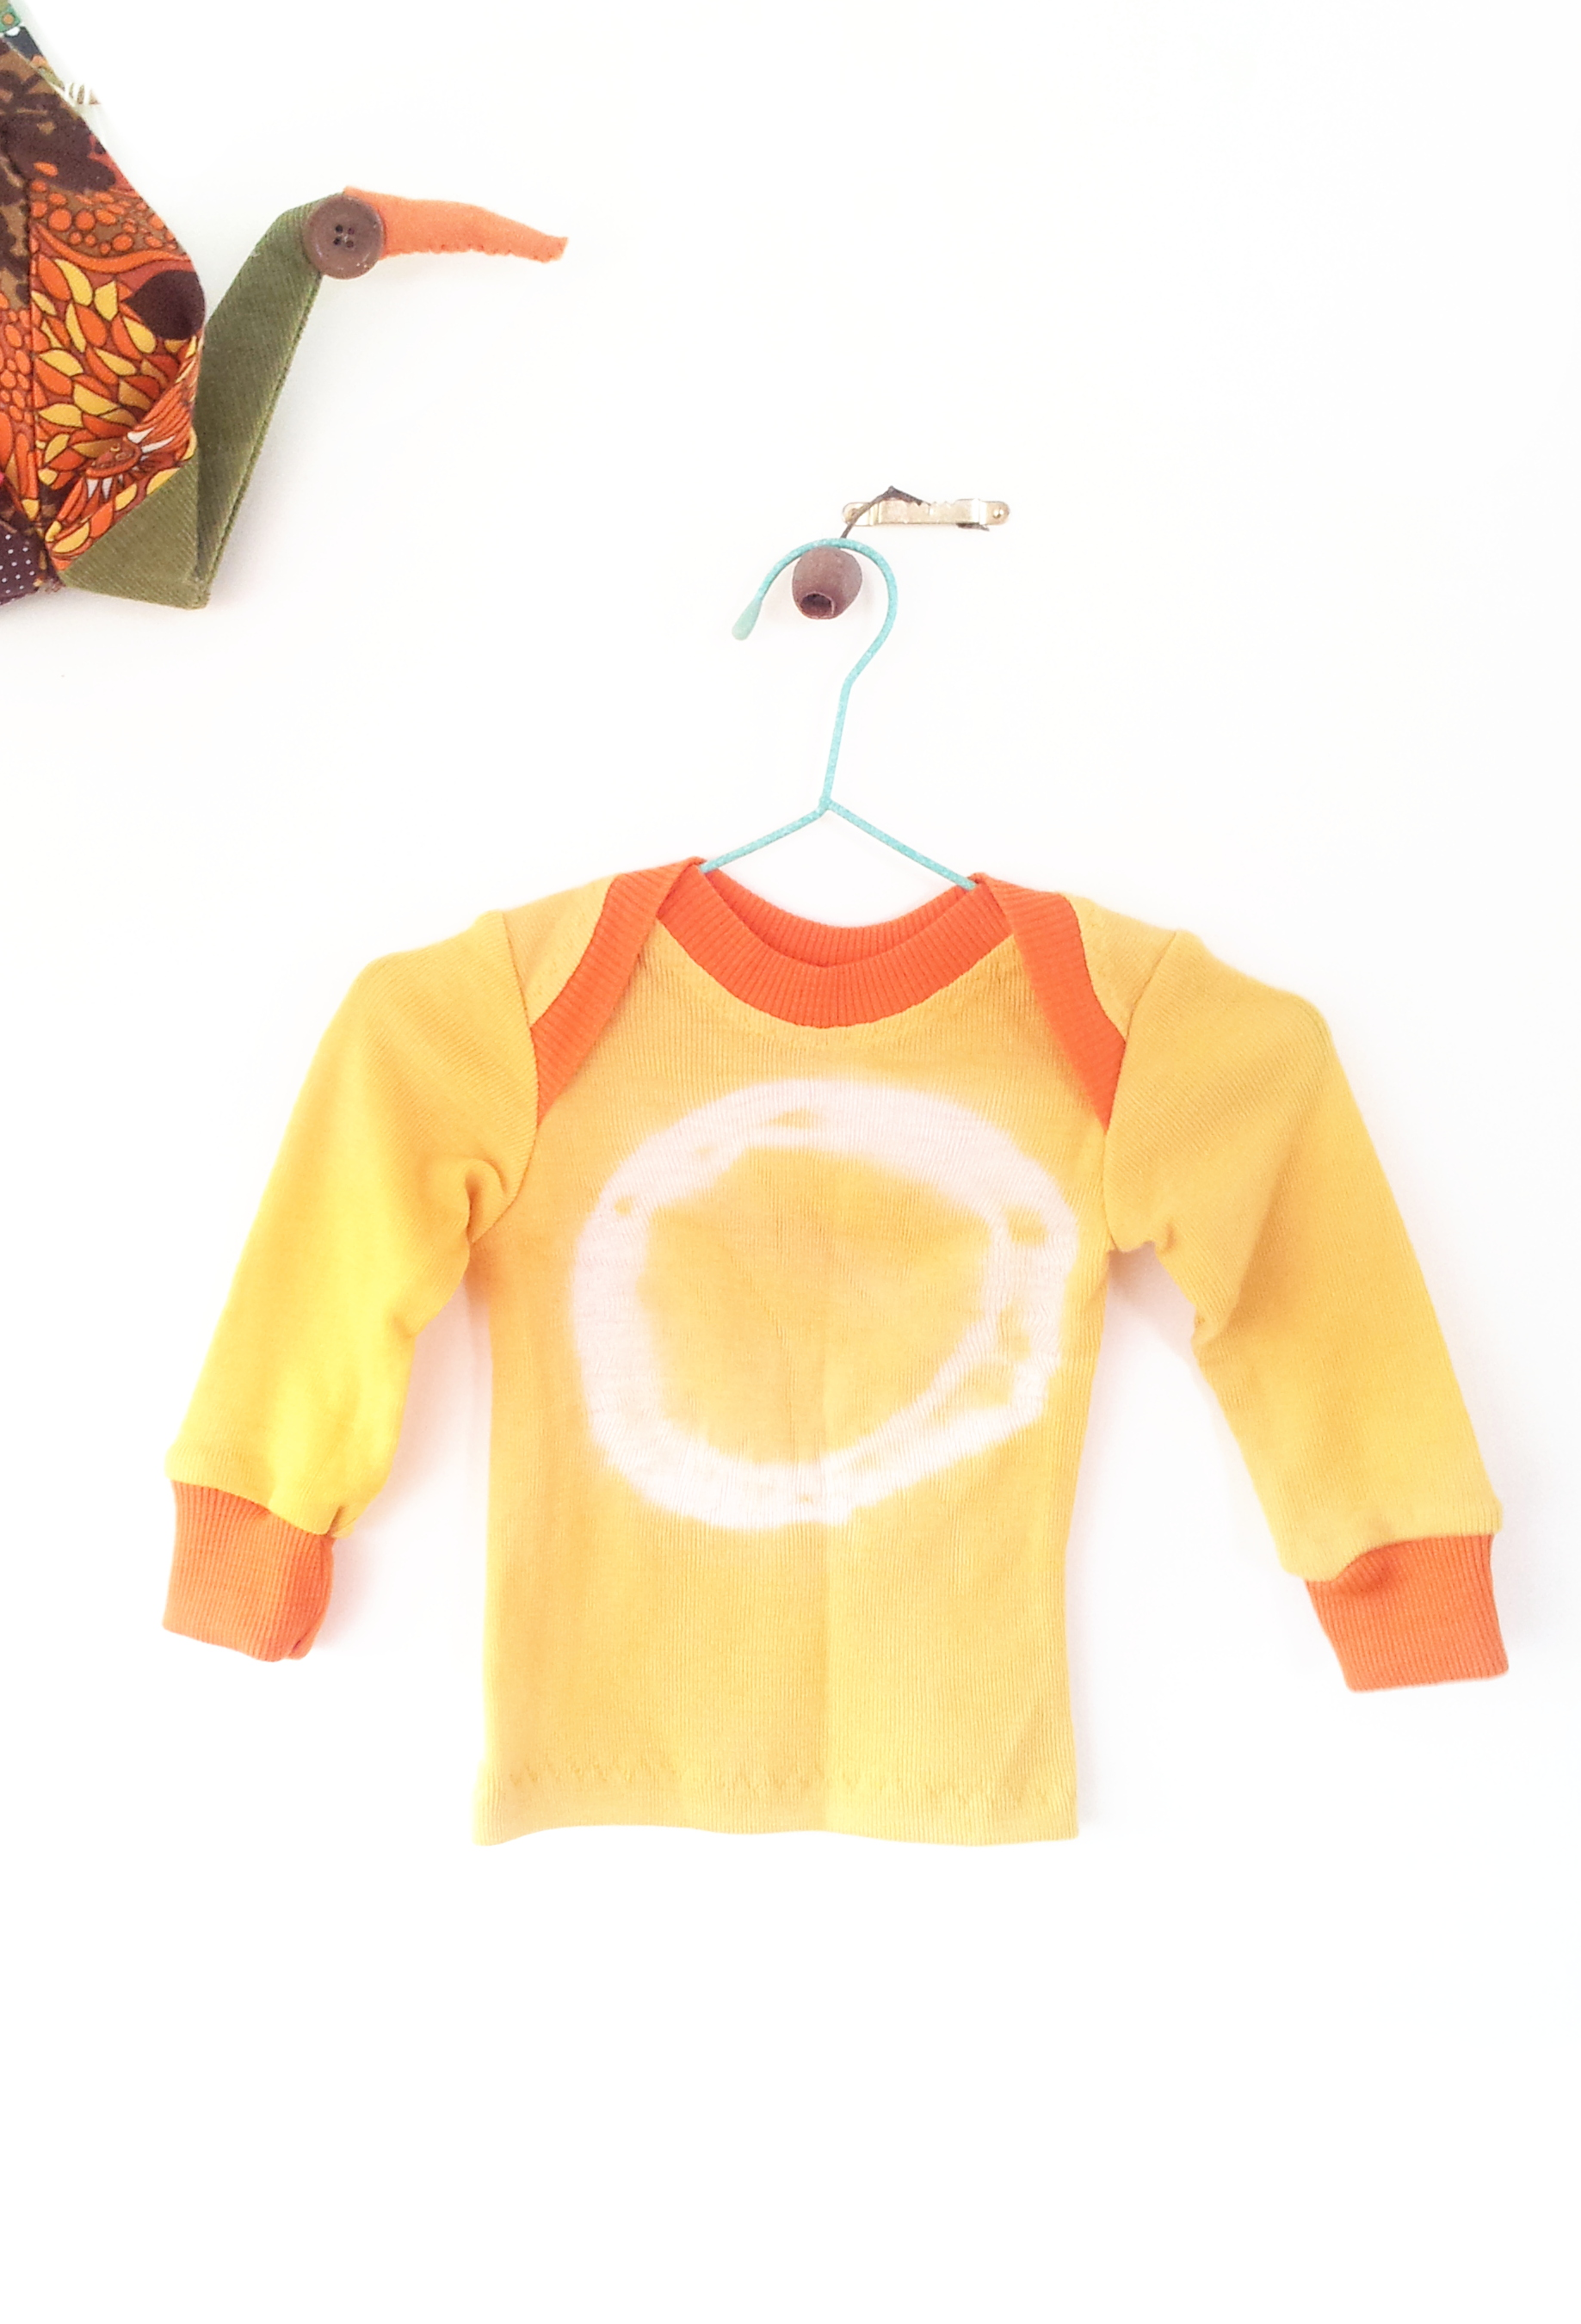 Tie dye + natural tumeric dye, it doesn't get much more crunchy than that!